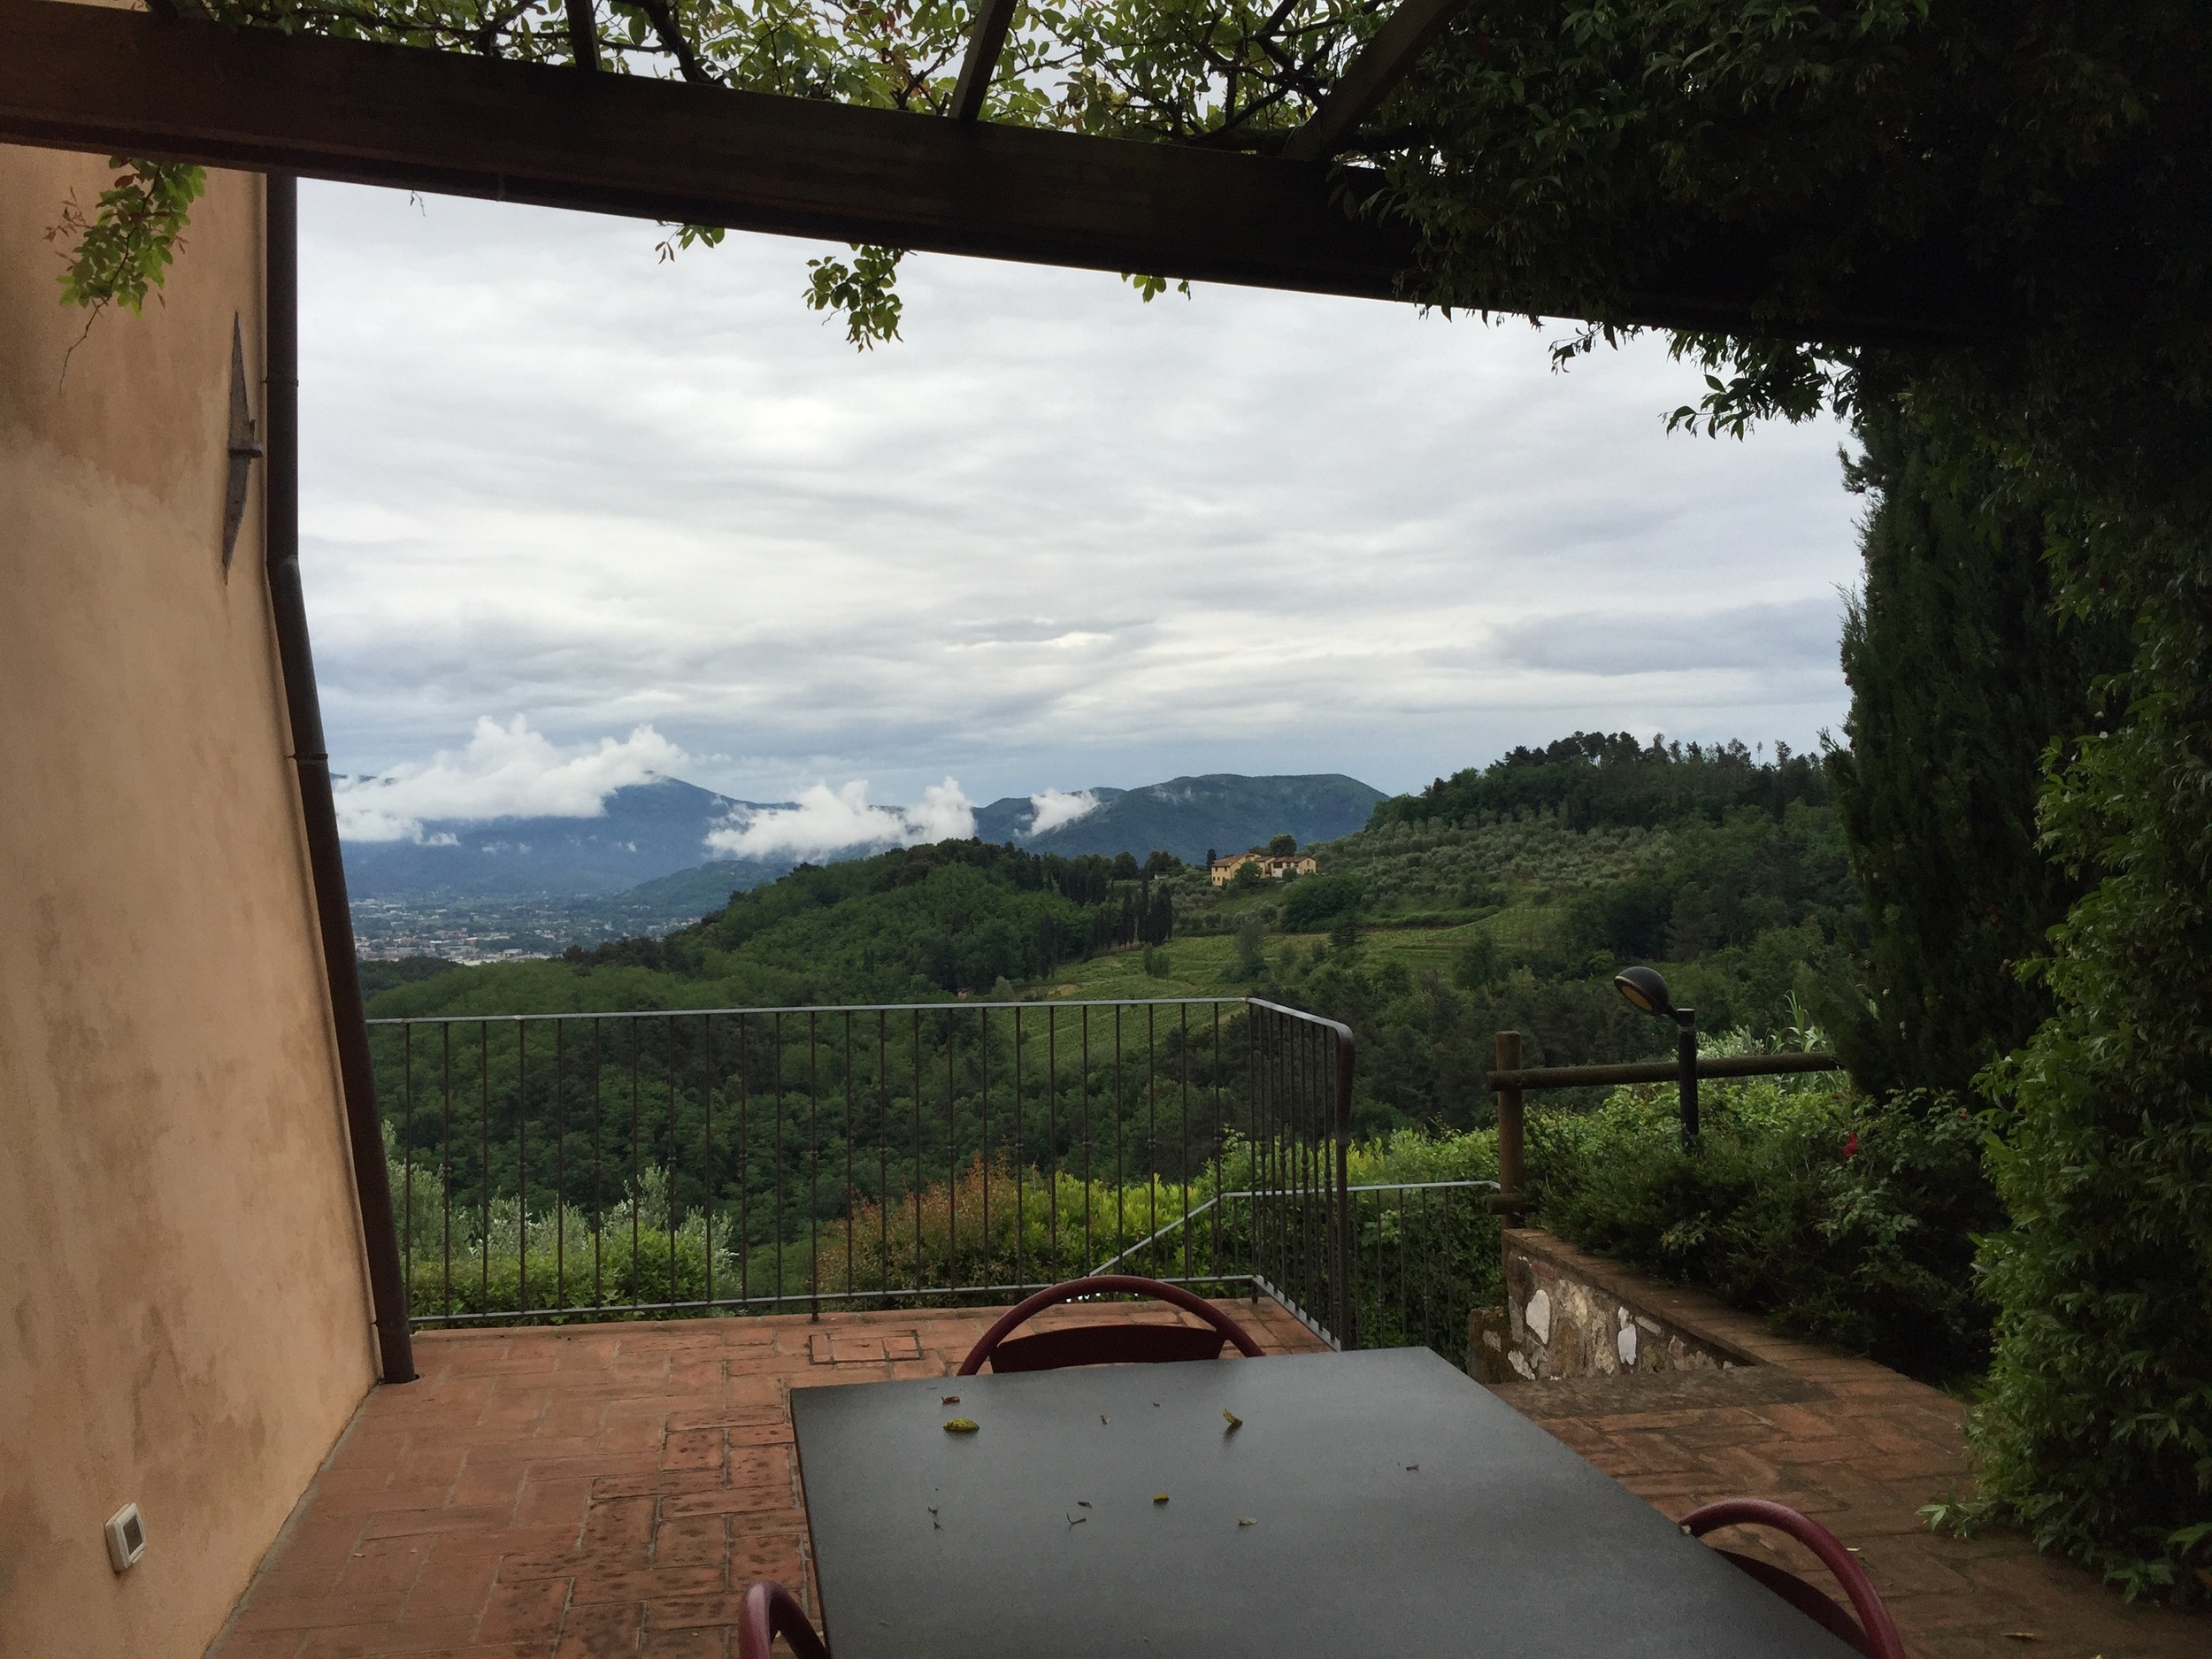 The view from my bedroom on the first day we woke up in Tuscany on last year's trip.